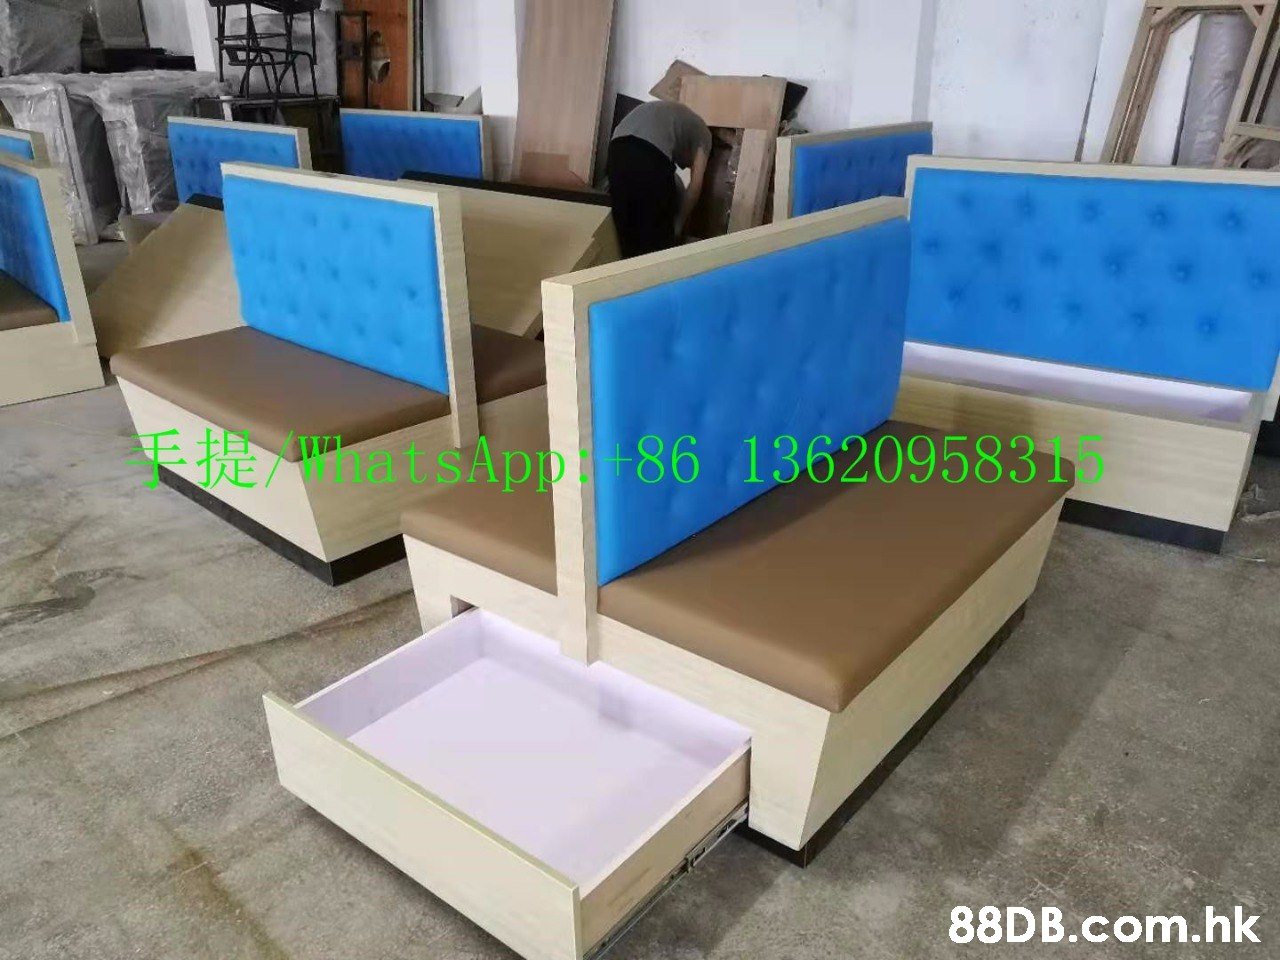 EIatsApp86 136209583 .hk  Product,Furniture,Plastic,Table,Room